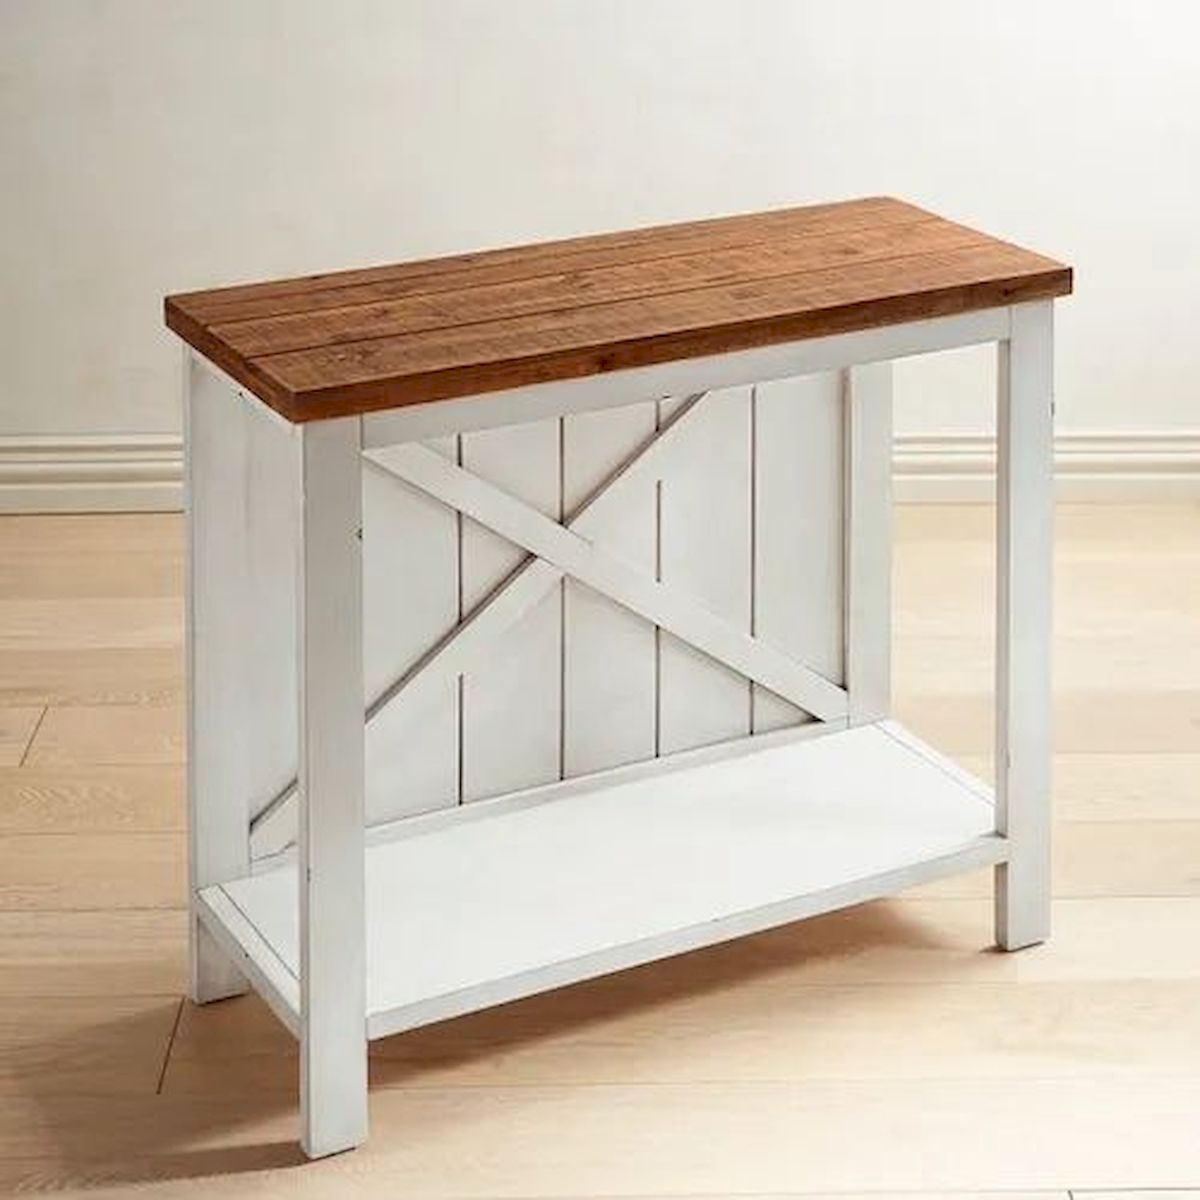 45 Easy and Cheap DIY Wood Furniture Ideas for Small House (21)